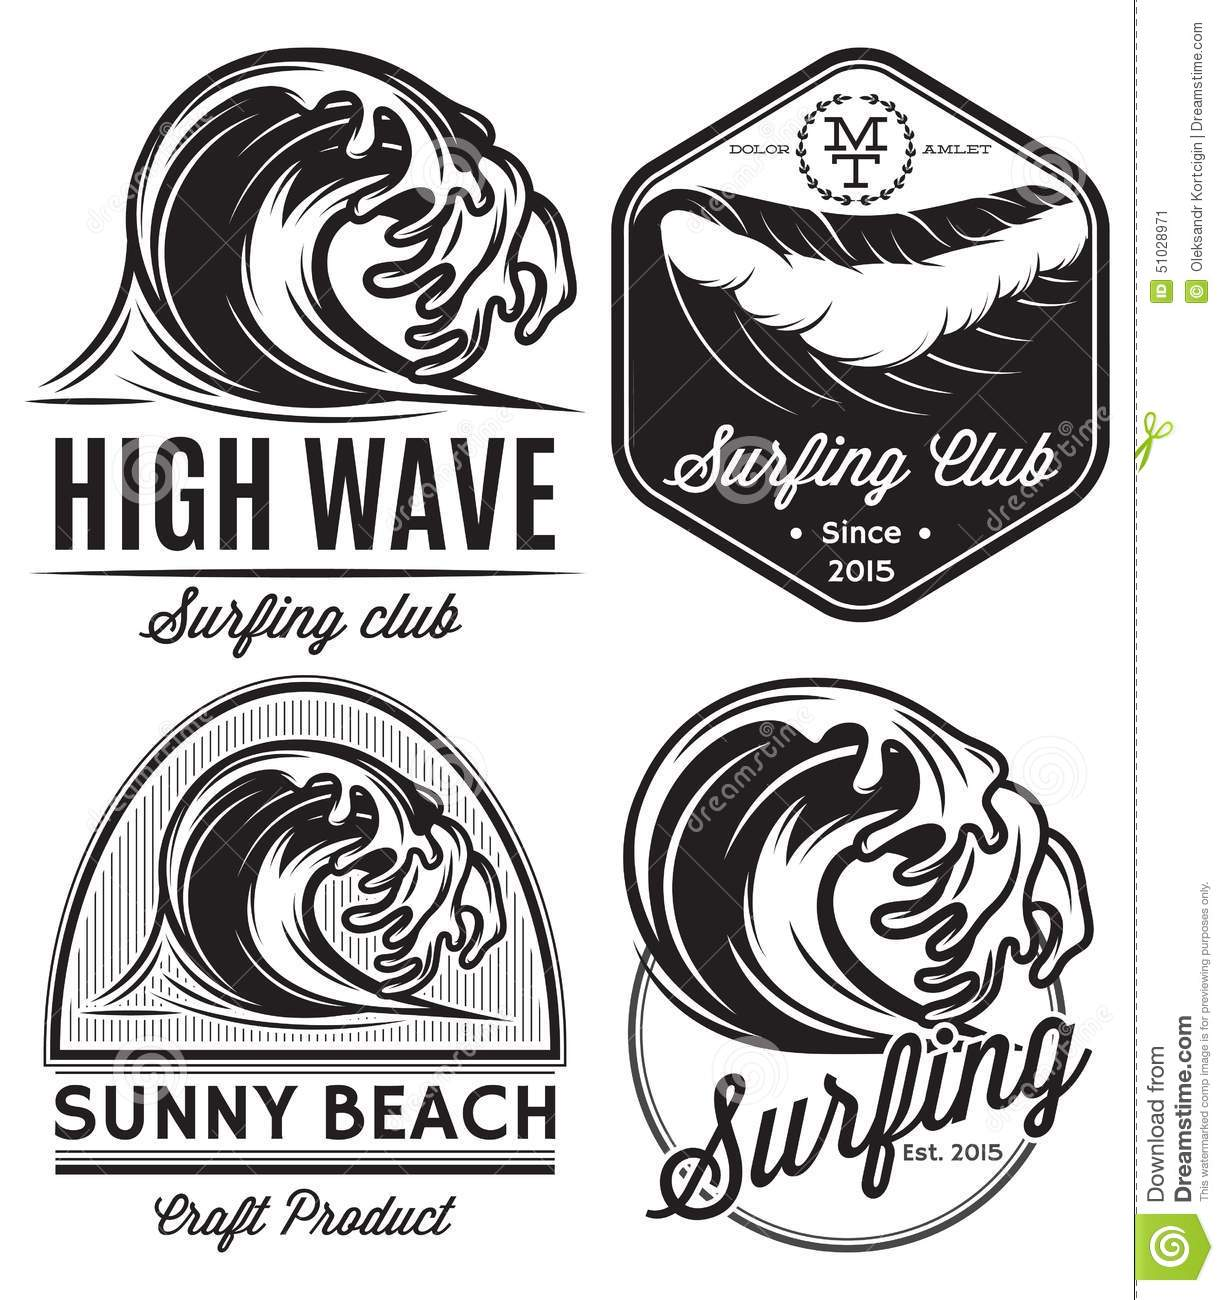 Vintage surfboards for sale Collectible surfboards for